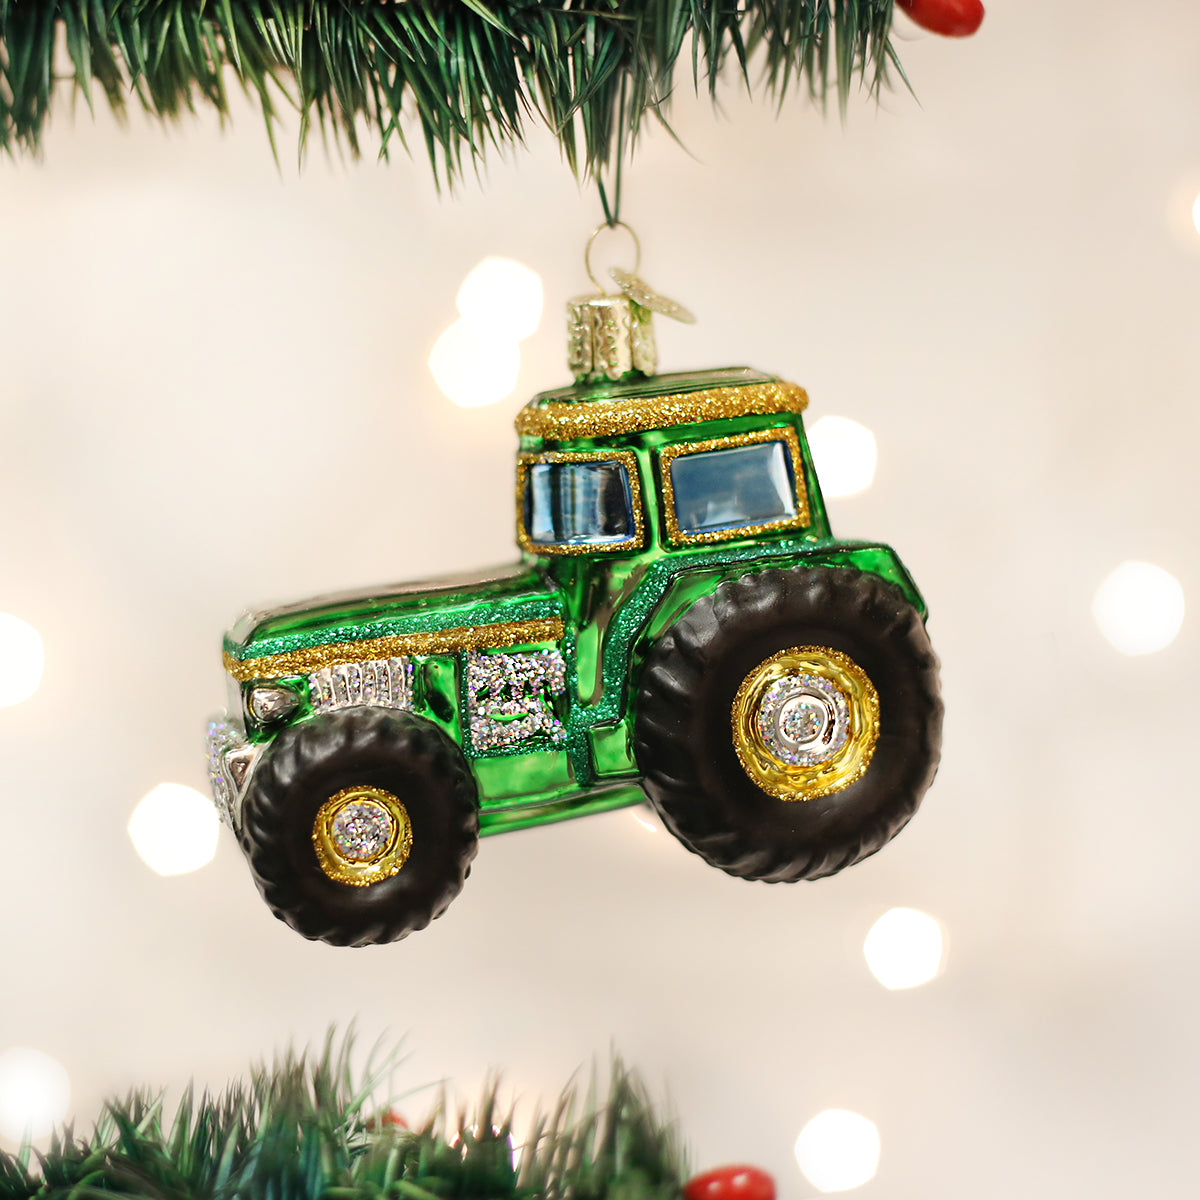 Tractor Ornament Old World Christmas